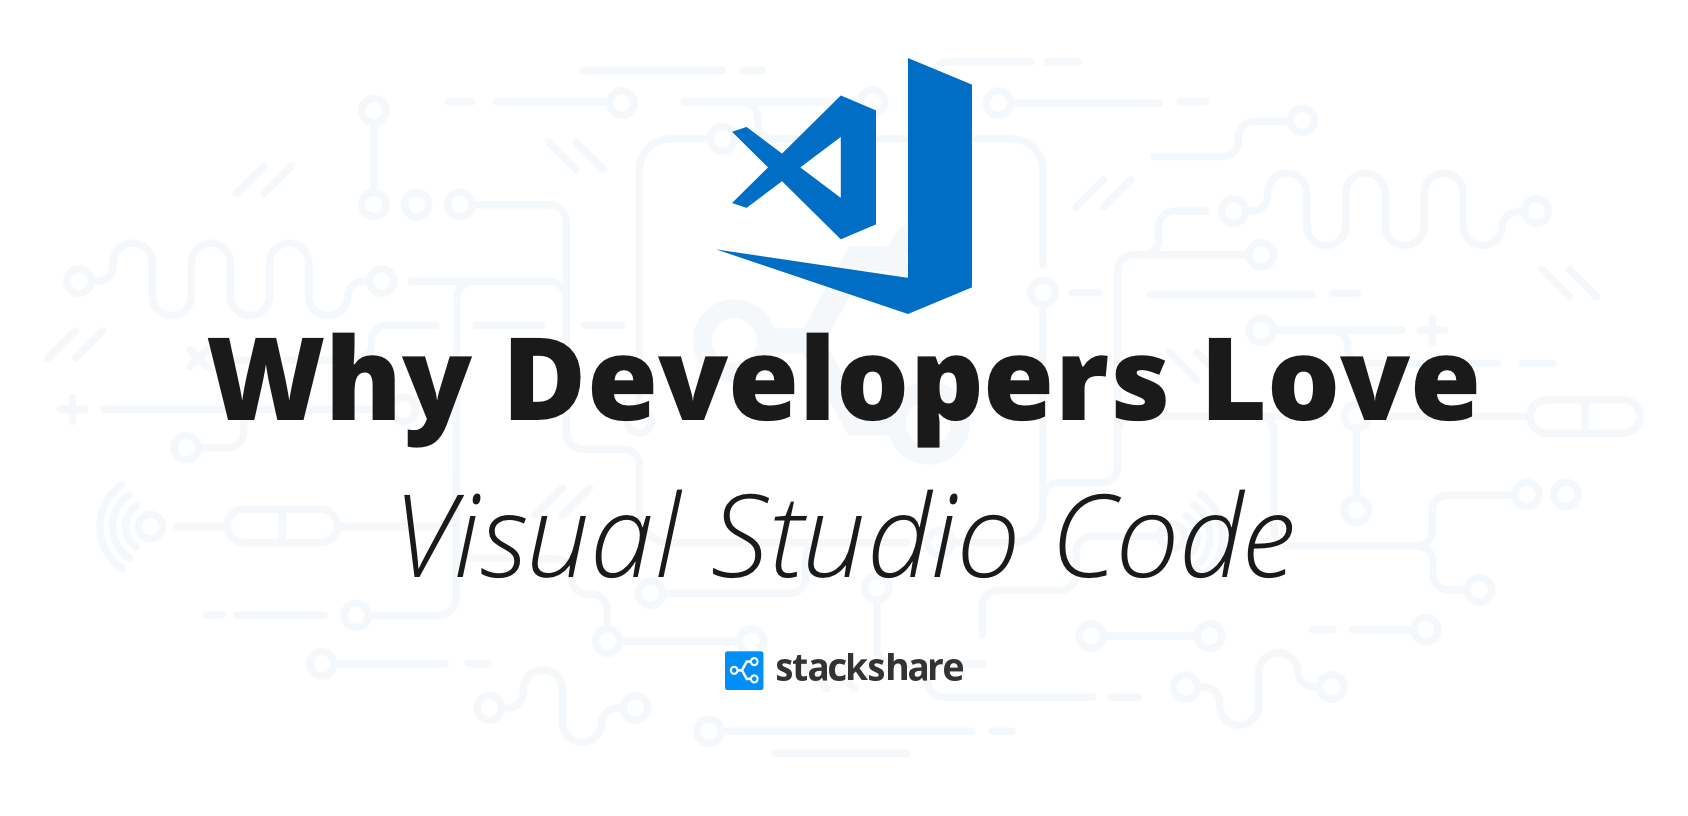 Why Developers Love Visual Studio Code